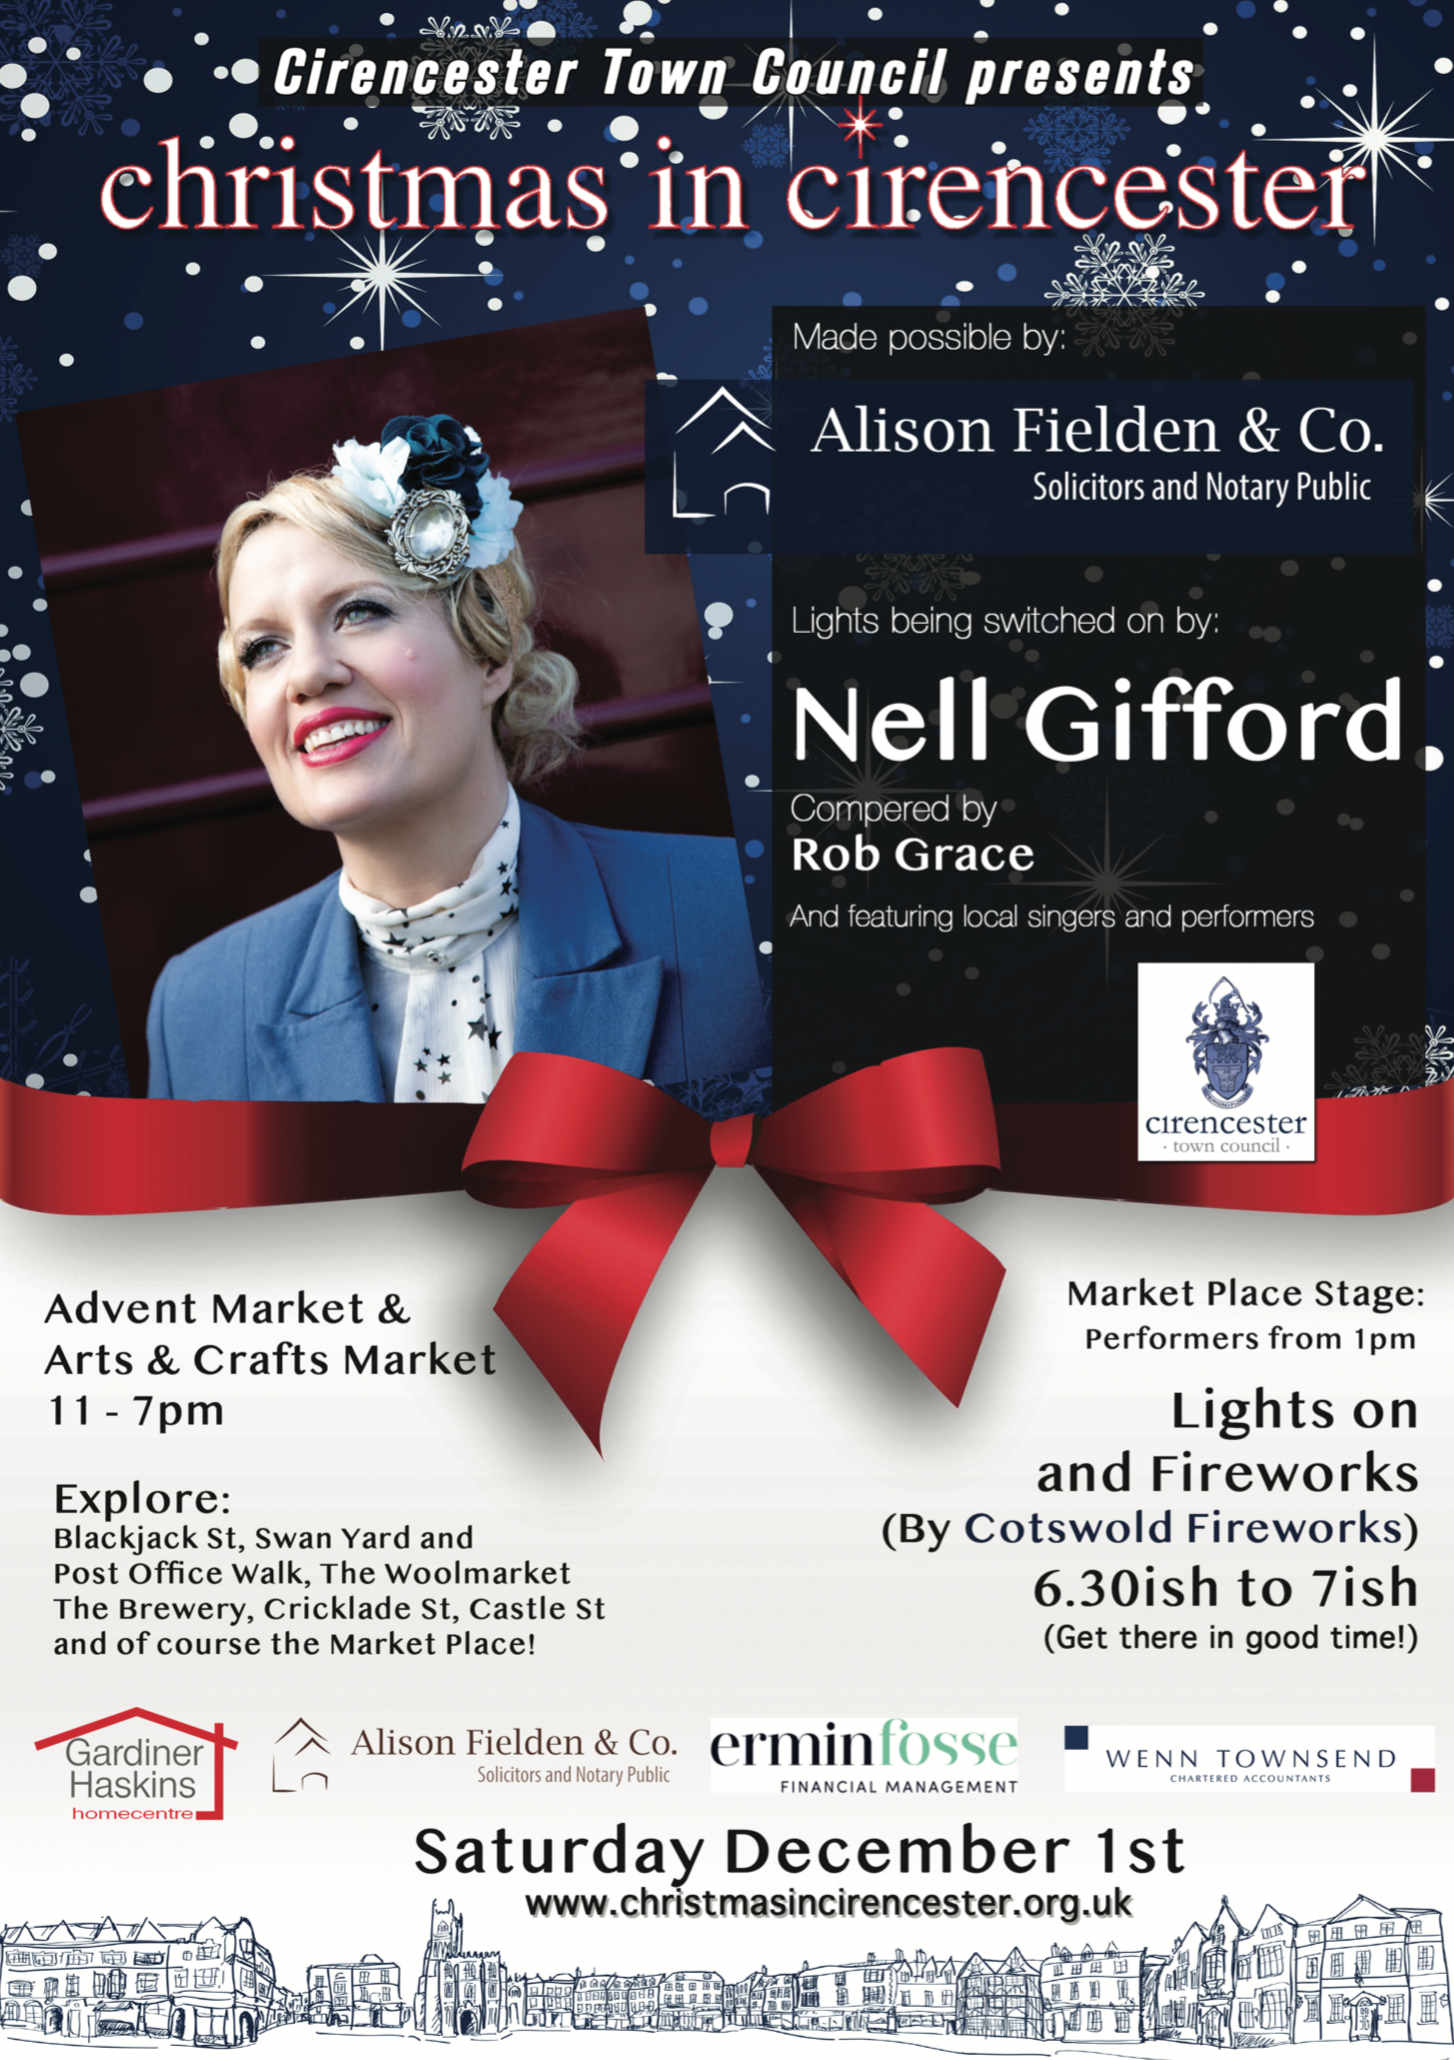 Nell Gifford, founder of Gifford's Circus, to turn on Cirencester's Christmas Lights